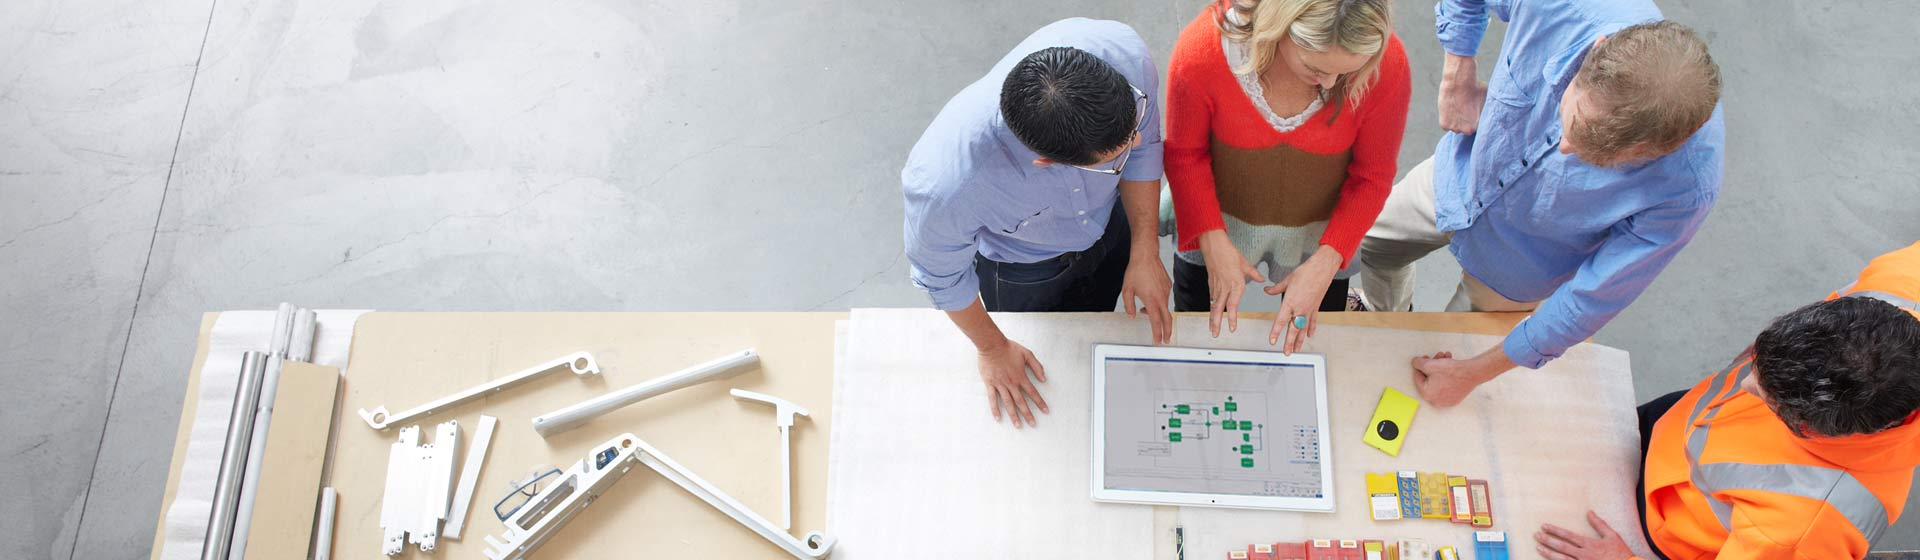 Four people standing at a table looking at a Visio diagram on a tablet computer image